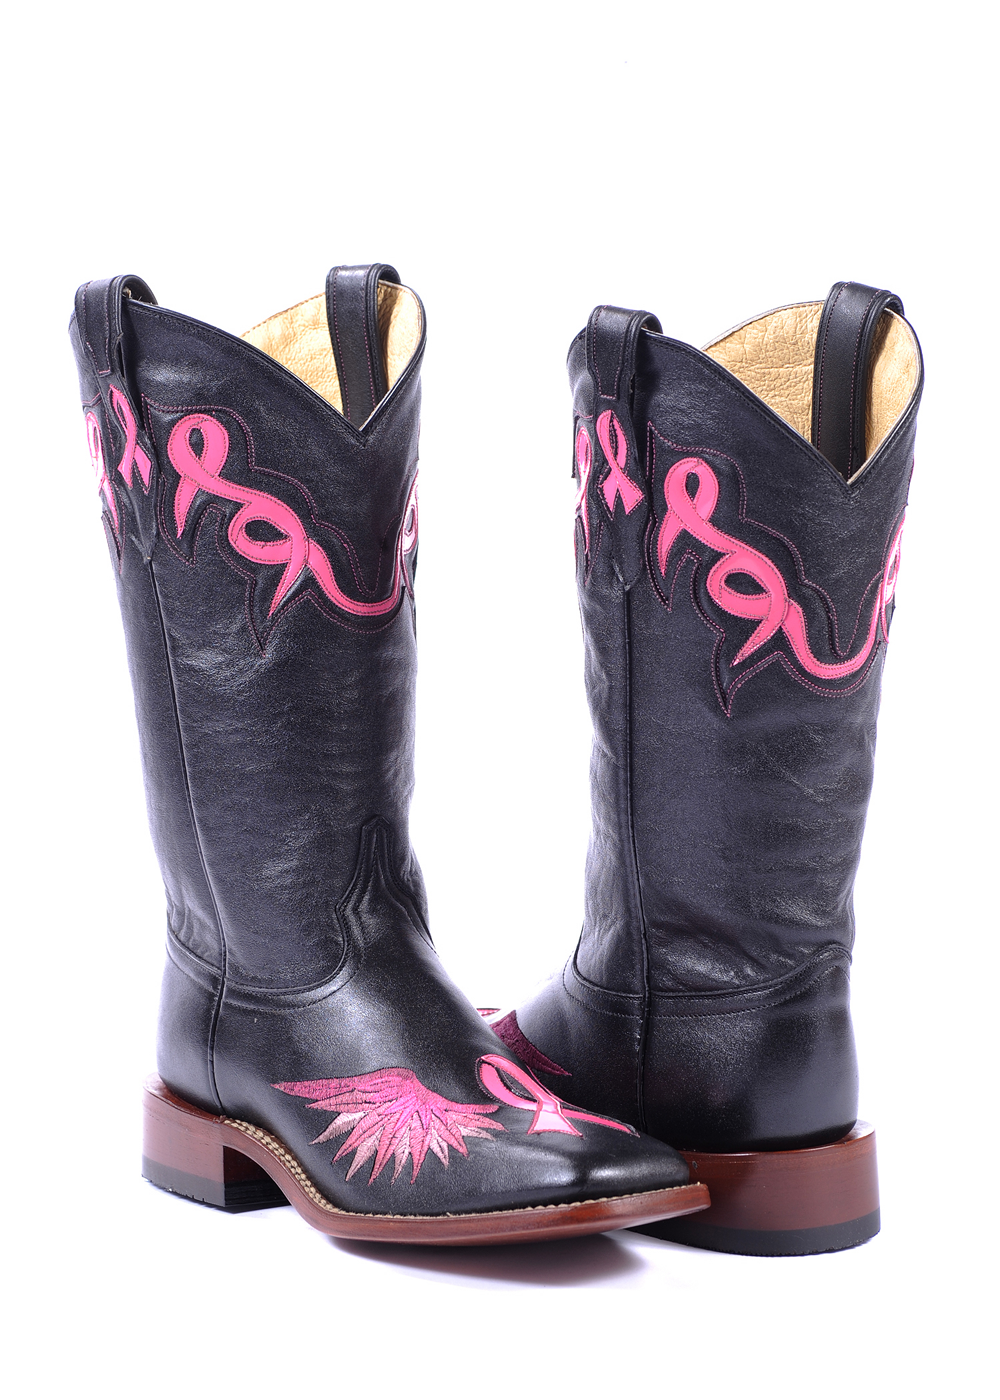 2012 Wings of Life Boot